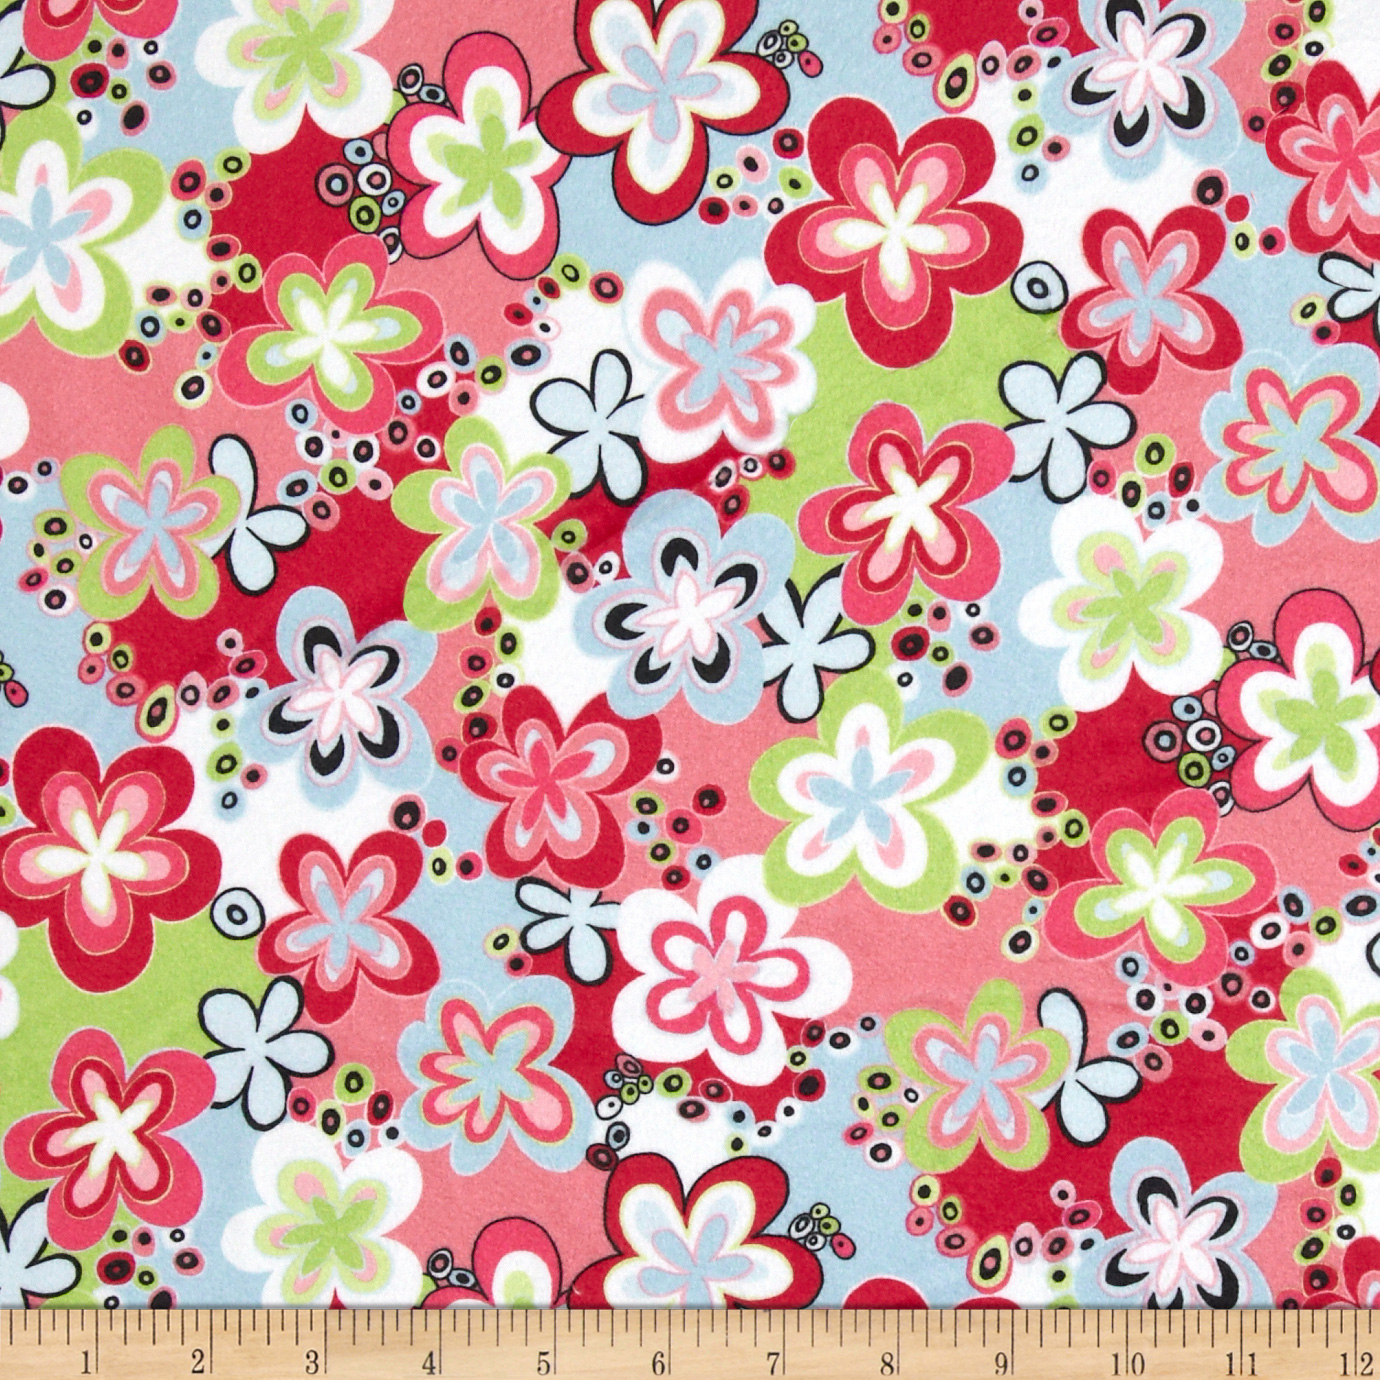 Minky Happy Talk Pink/Lime Fabric by E.Z Fabric in USA